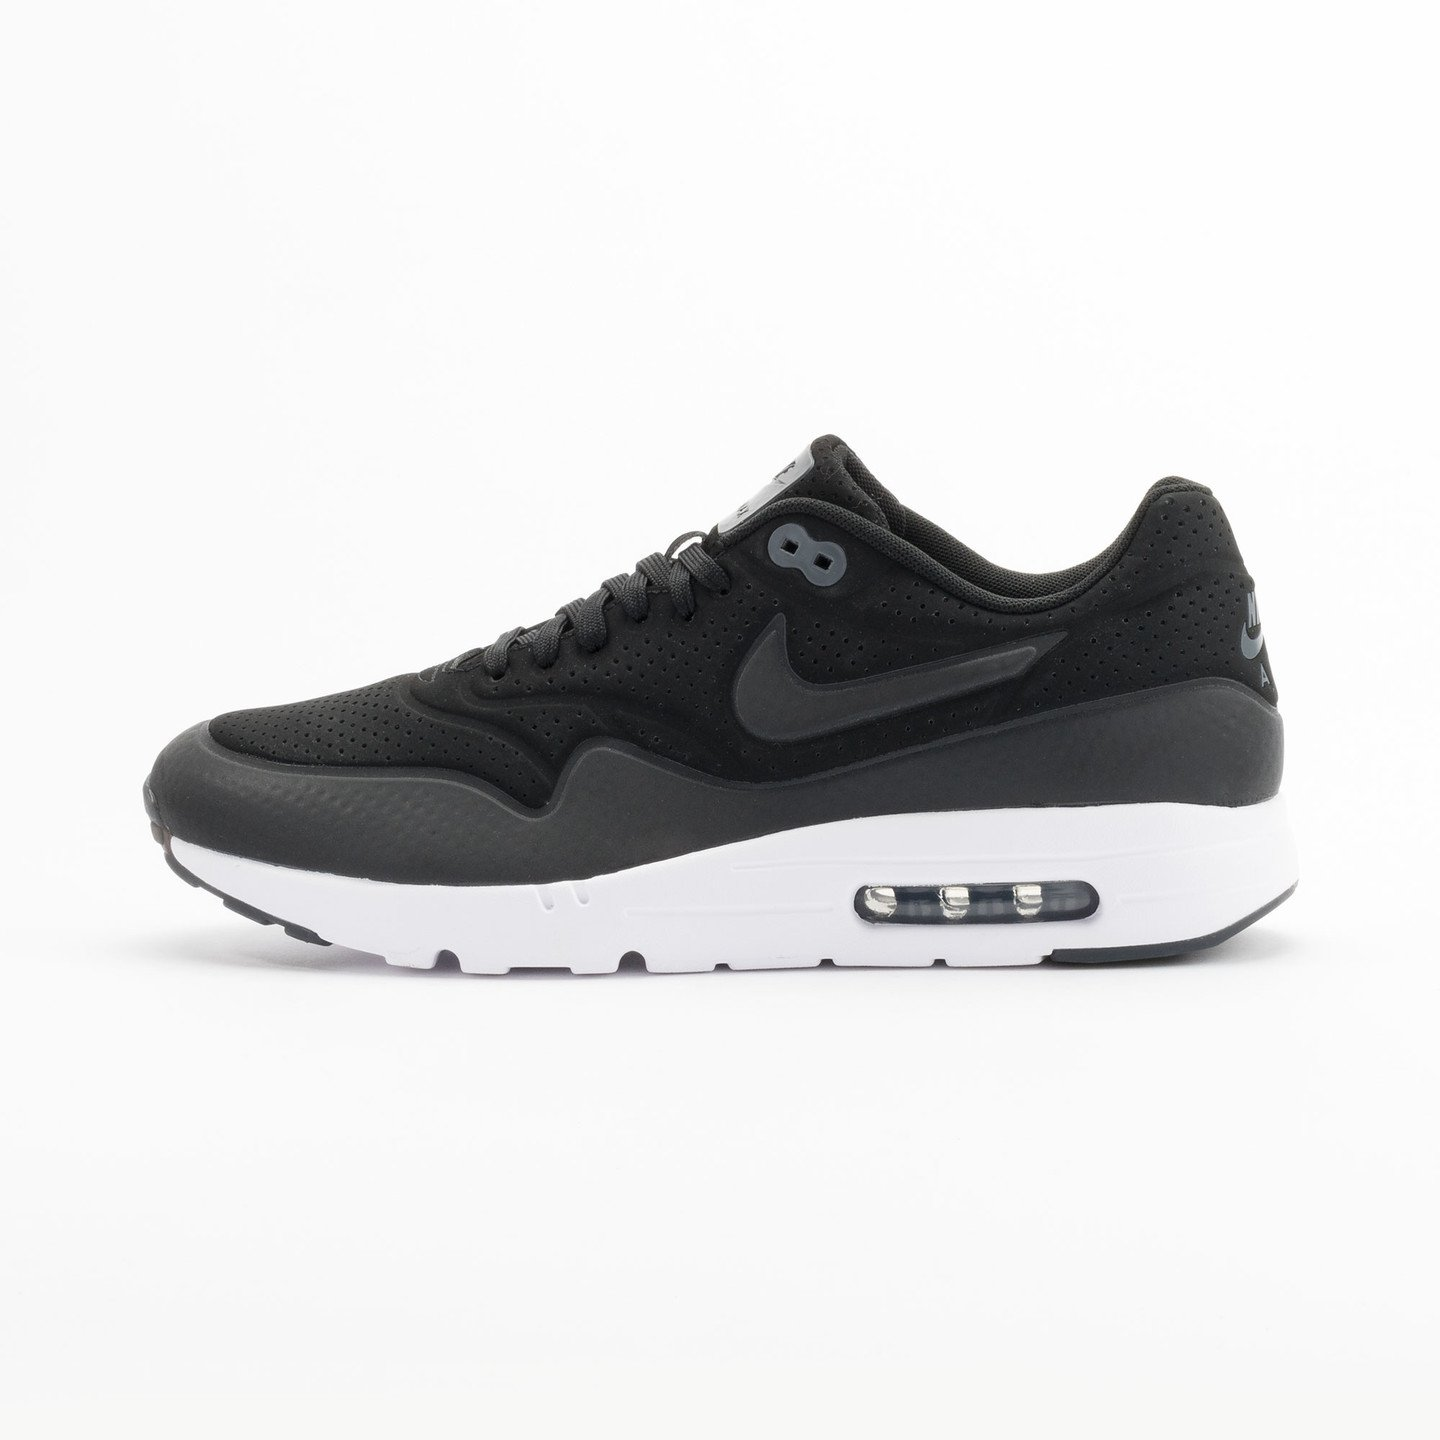 Nike Air Max 1 Ultra Moire Black Reflective / White 705297-010-45